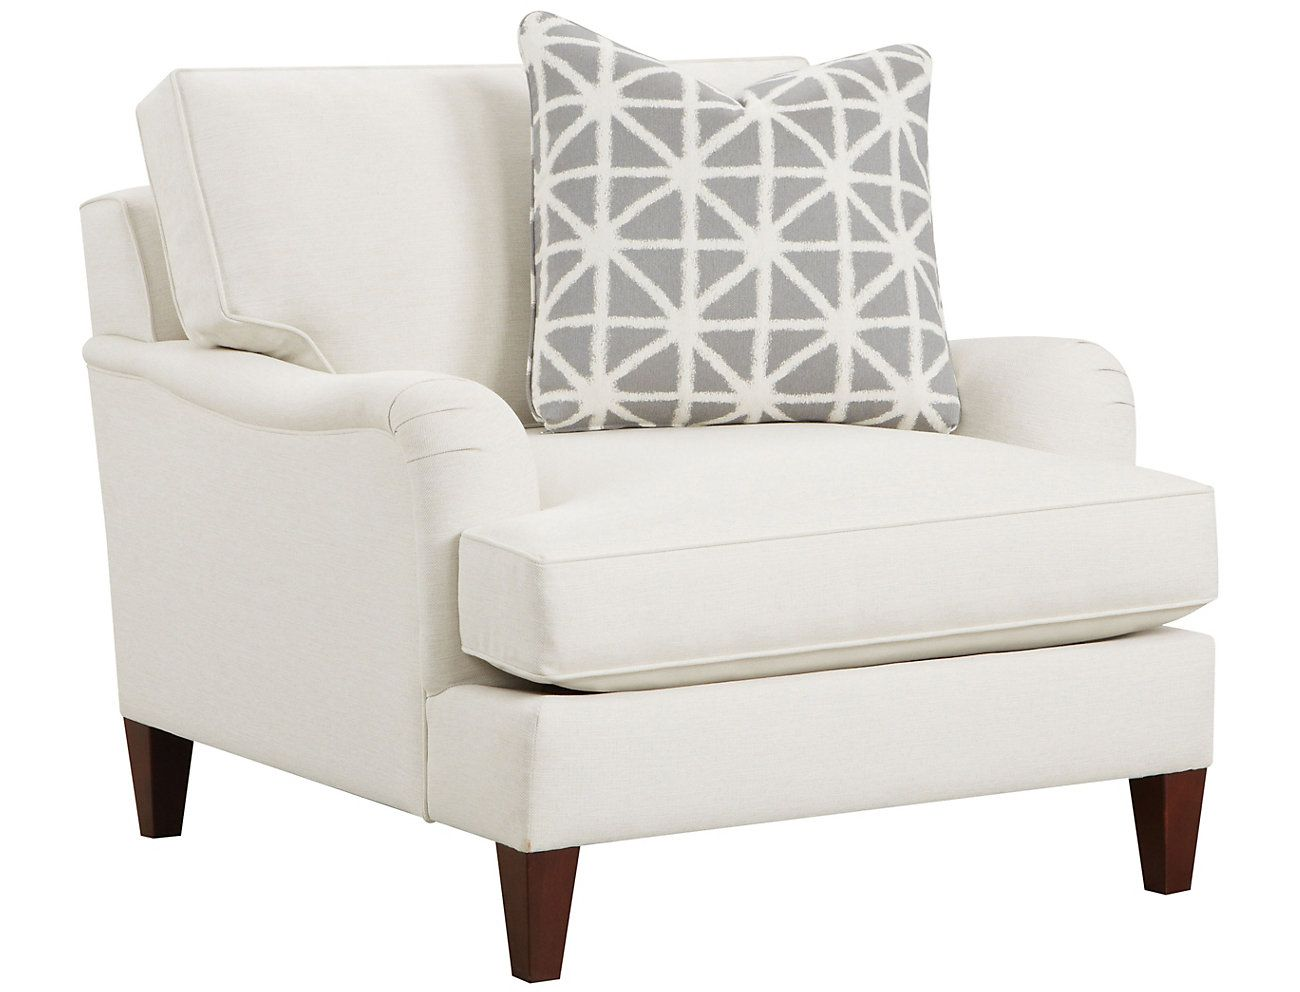 Omni Chair Large Family Room Accent Chair Affordable Chair